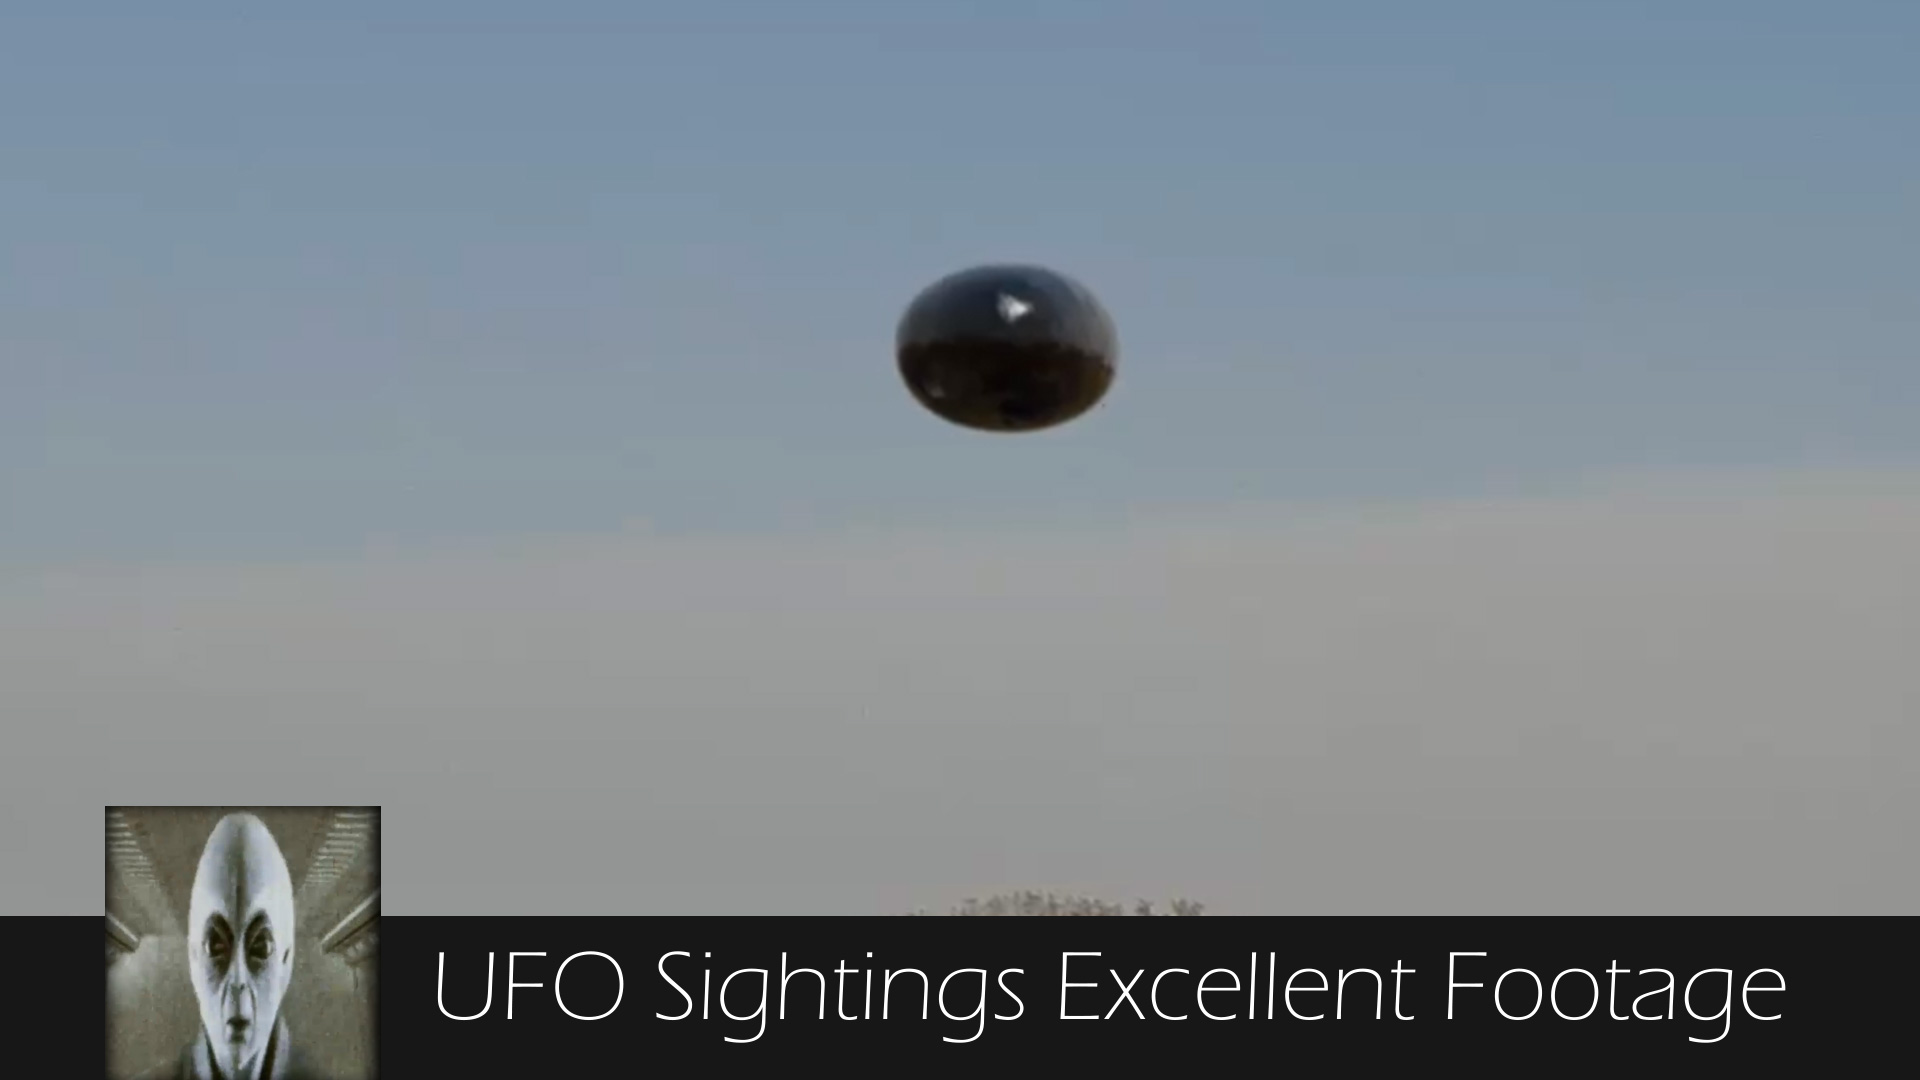 UFO Sightings Excellent Footage April 25th 2017 ...